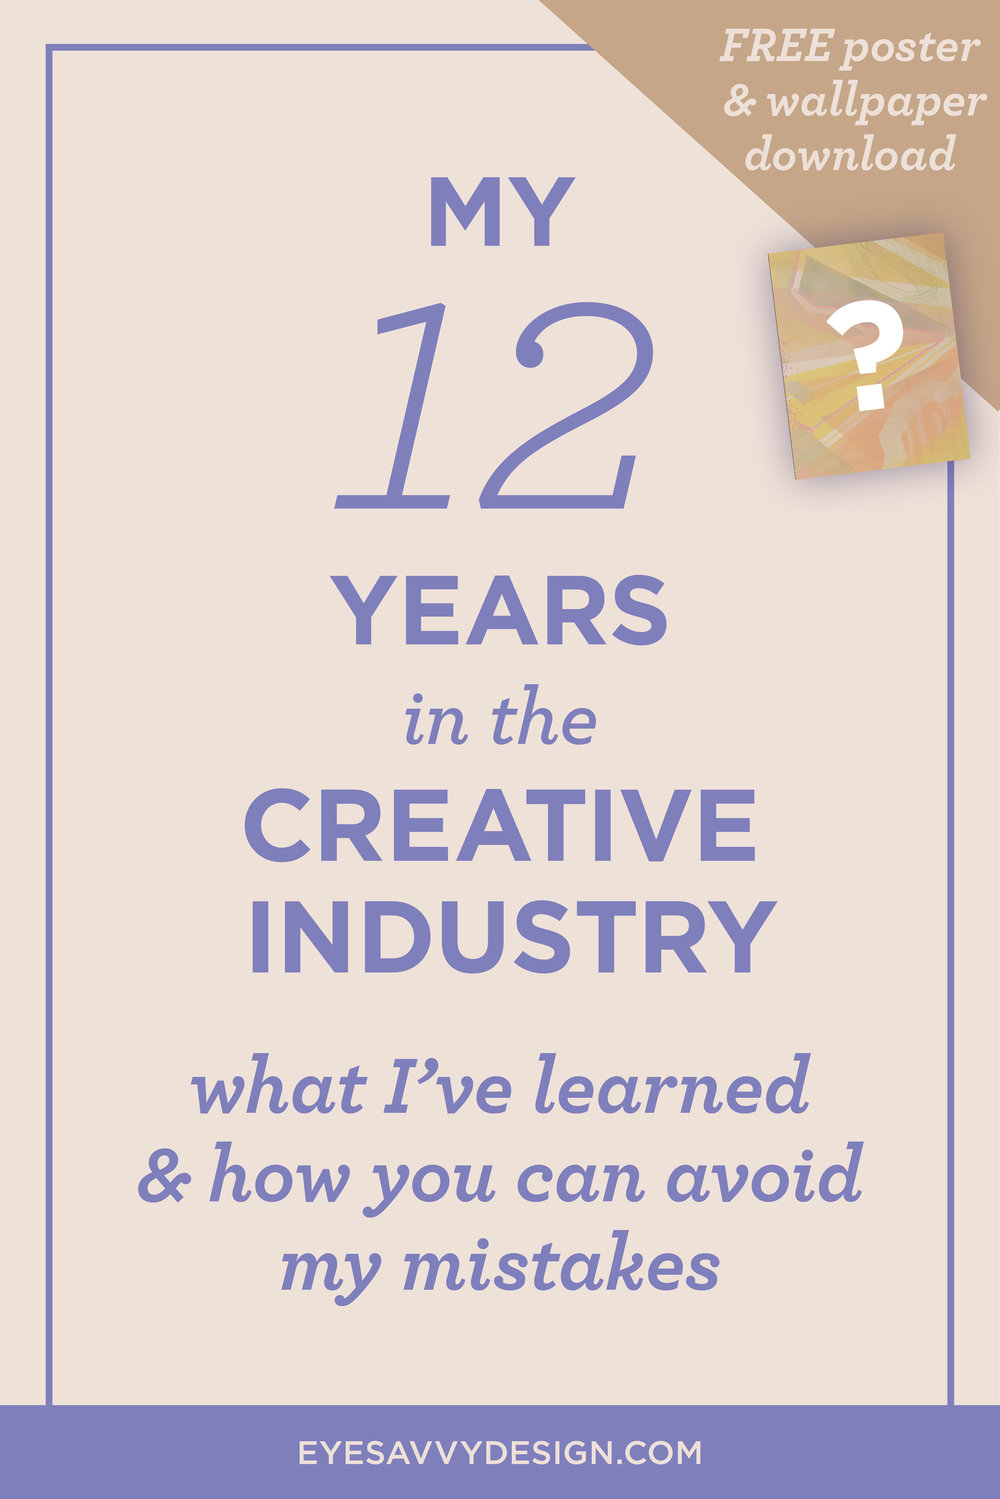 My 12 Years In The Creative Industry: What I've Learned And How You Can Avoid My Mistakes | EyeSavvy Design | Kiki Bakowski | Brand Design, Creative Industry, Lessons Learned, Advice, Avoid My Mistakes, FREE download,  Motivational Poster & desktop Wallpaper Download #freedownload #freewallpaper #creativeindustry #gooddesign #freelancedesigner #branding #branddesign #branding101